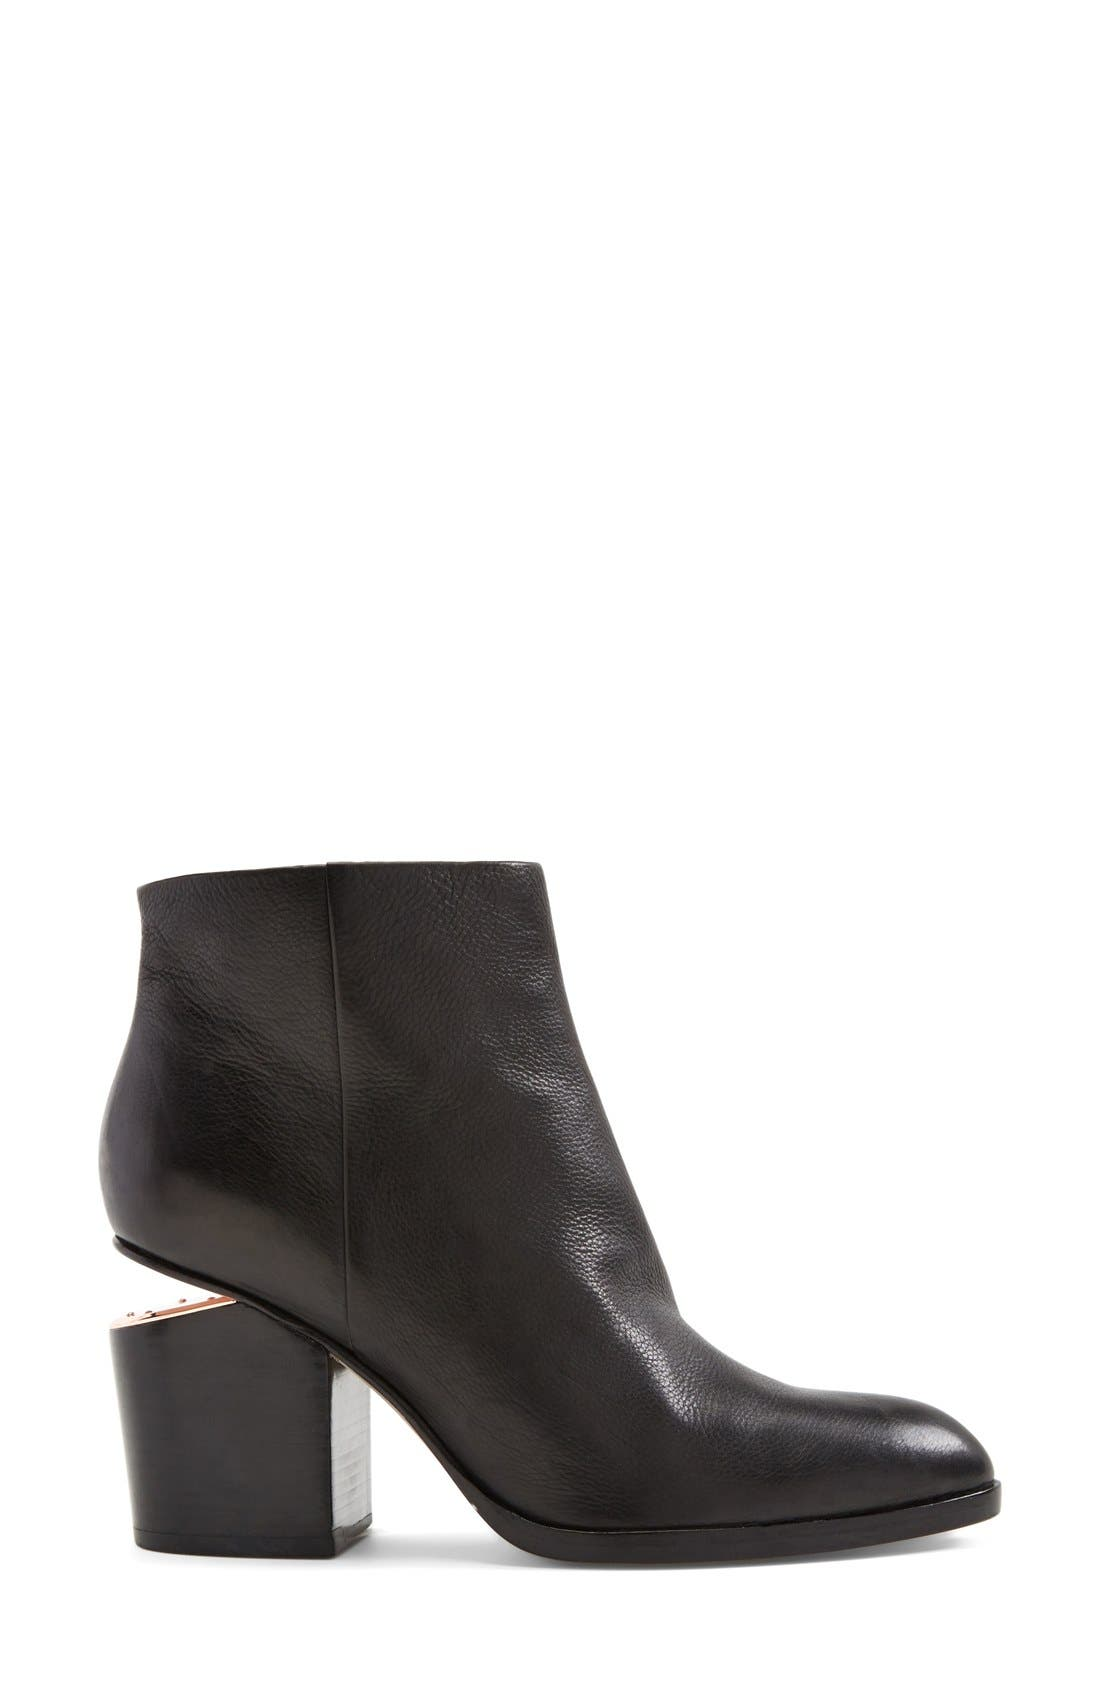 Gabi Bootie,                             Alternate thumbnail 4, color,                             BLACK LEATHER